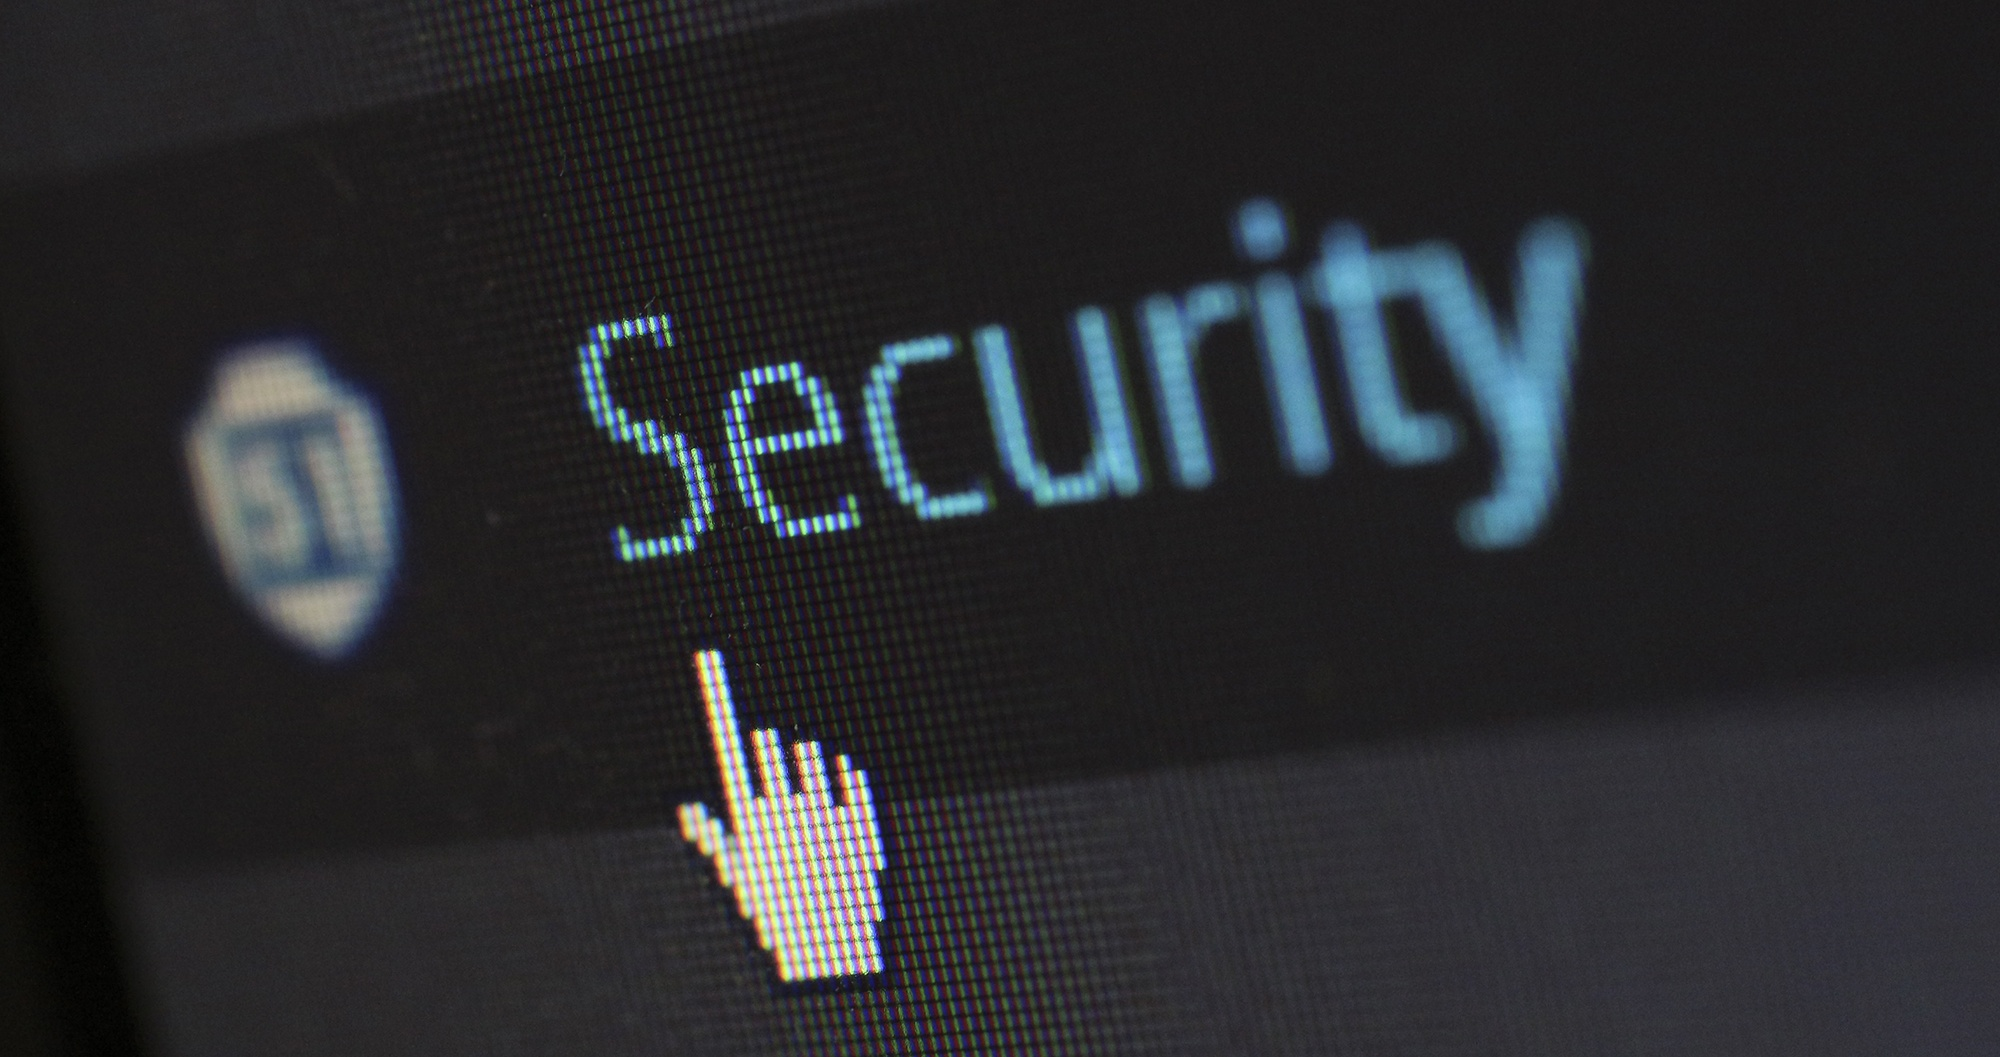 7 cyber security tips to keep you safe online